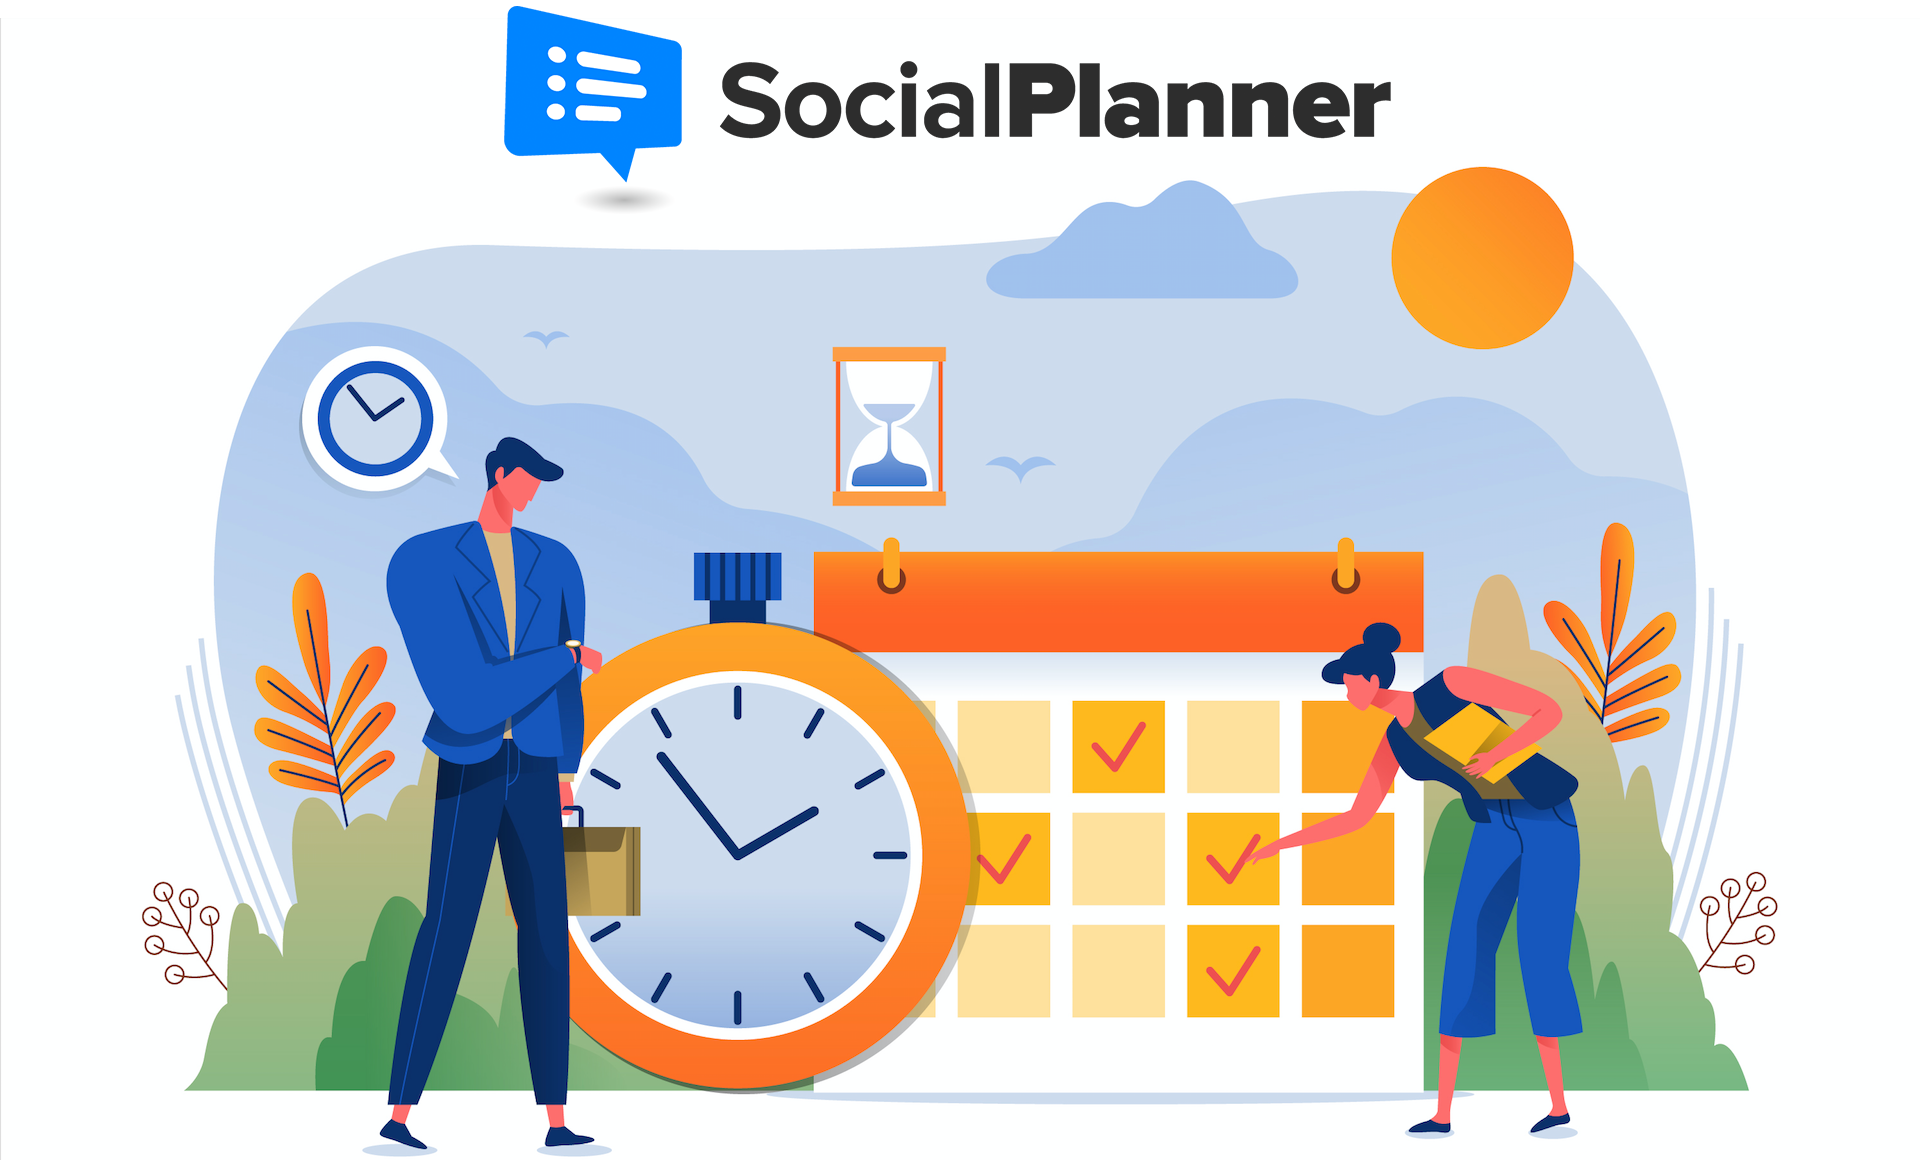 SocialPlanner - Social Media Calendar And Scheduling